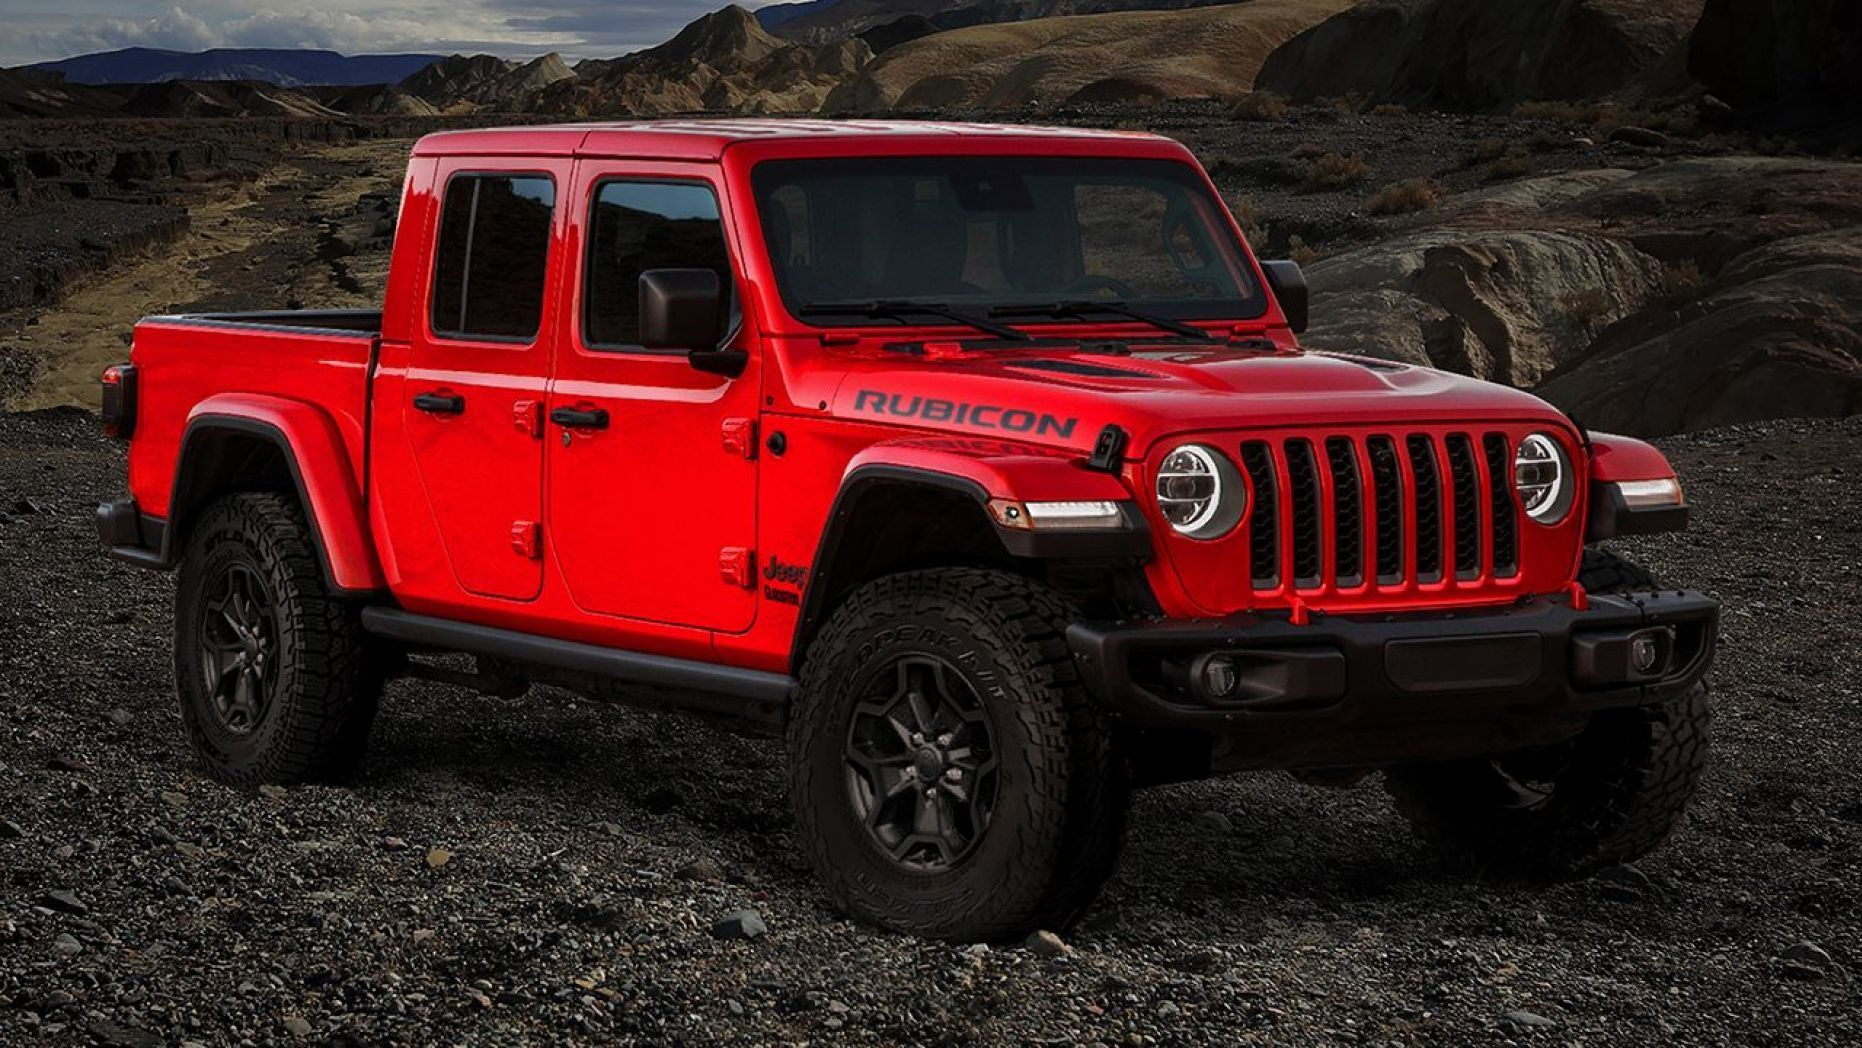 2020 Jeep Gladiator Launch Edition On Sale For Just 1 Day Jeep Gladiator Jeep Pickup Jeep Wrangler Rubicon